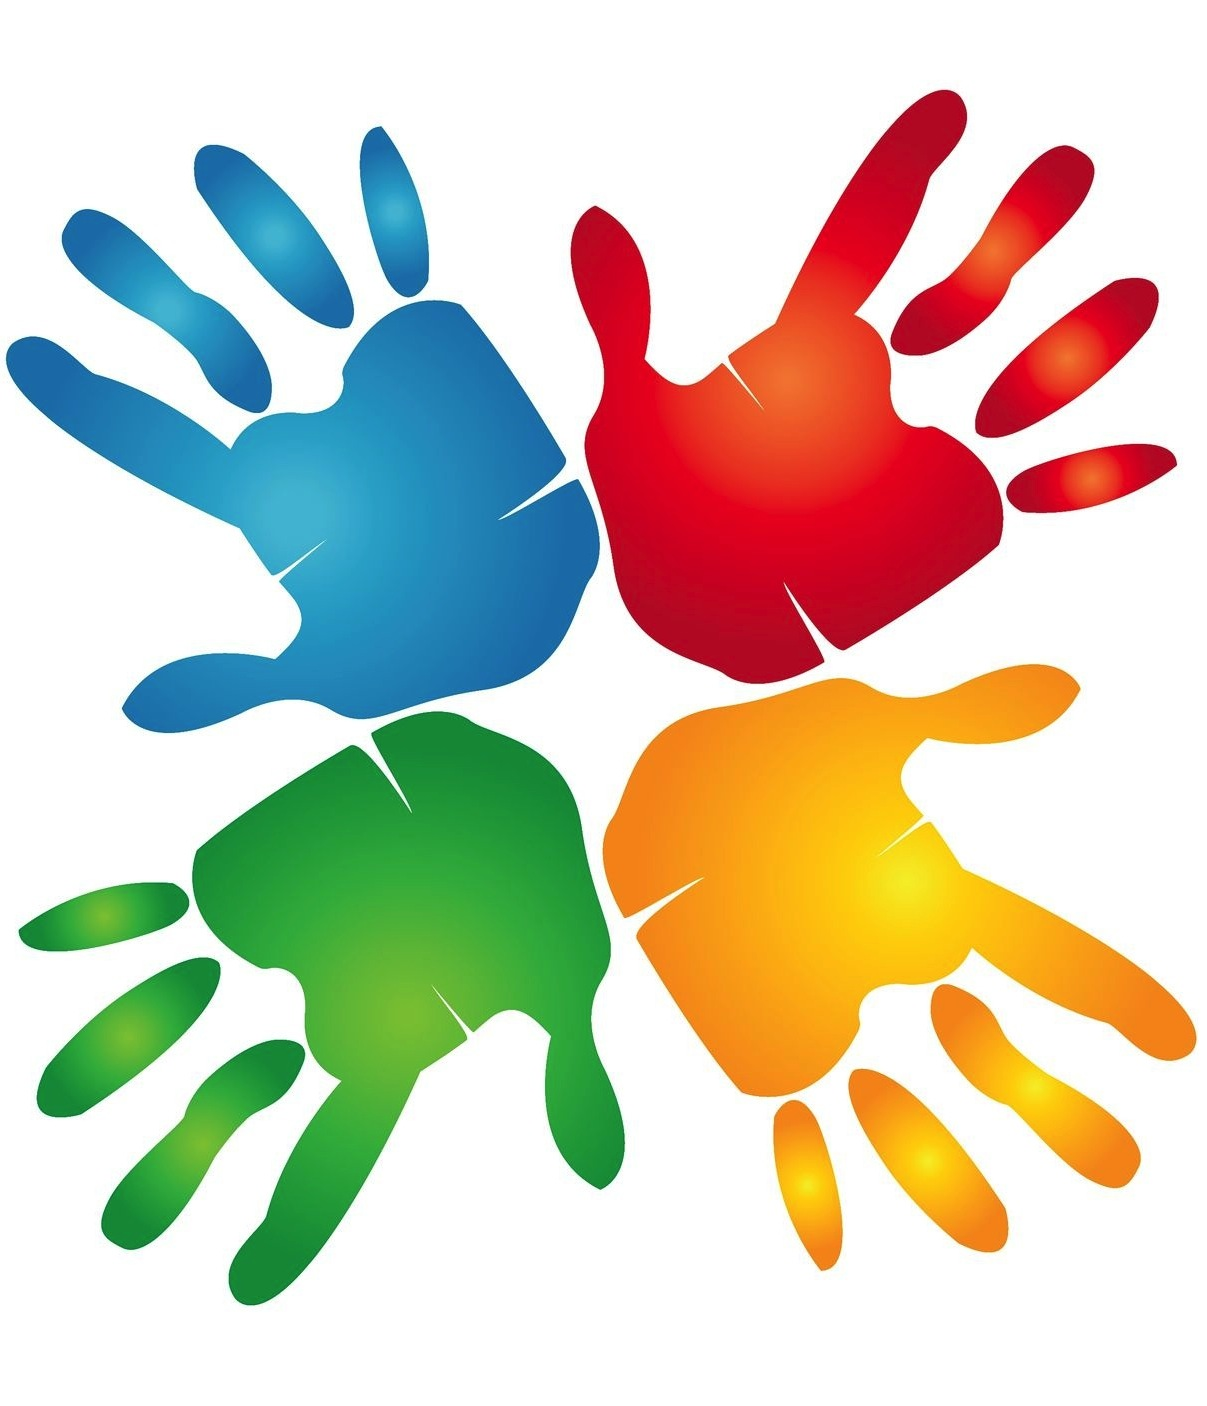 Free Hand Therapy Cliparts, Download Free Clip Art, Free Clip Art on.